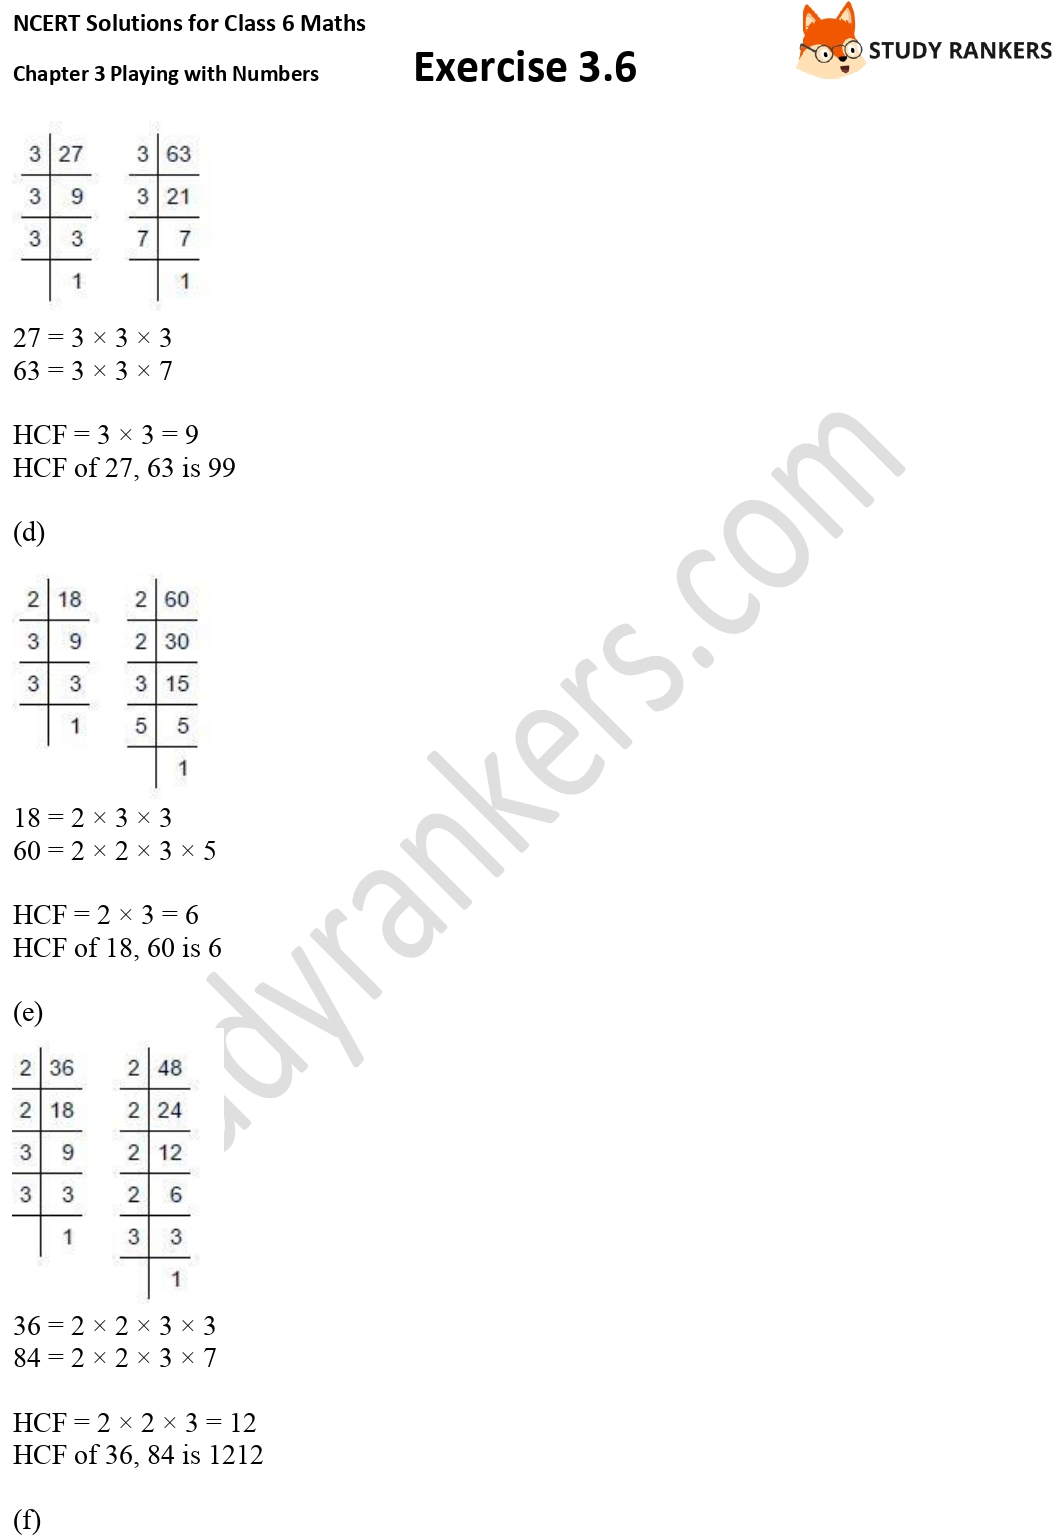 NCERT Solutions for Class 6 Maths Chapter 3 Playing with Numbers Exercise 3.6 Part 2